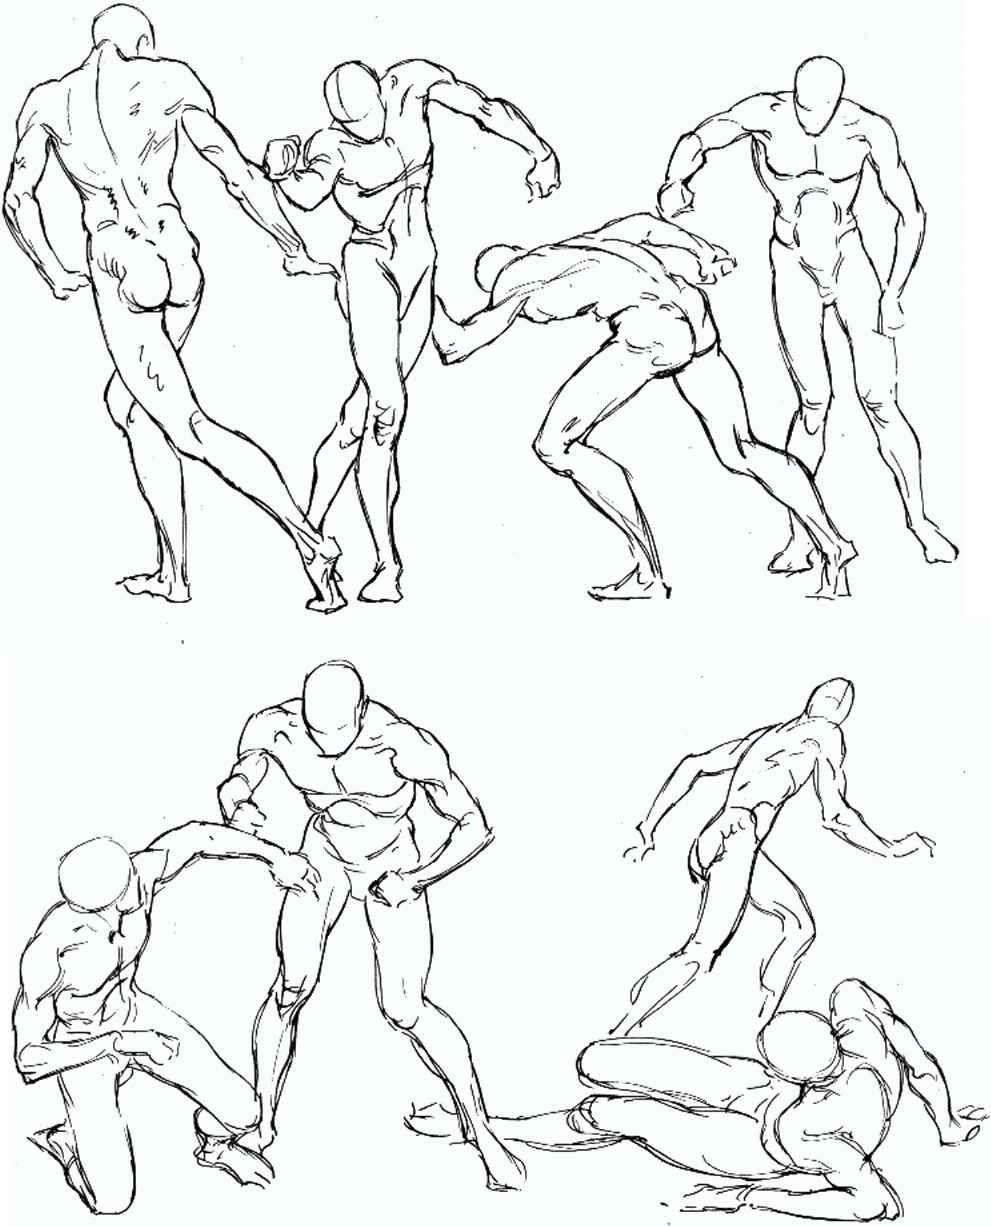 991x1227 Sketching The Figure In Action From Imagination